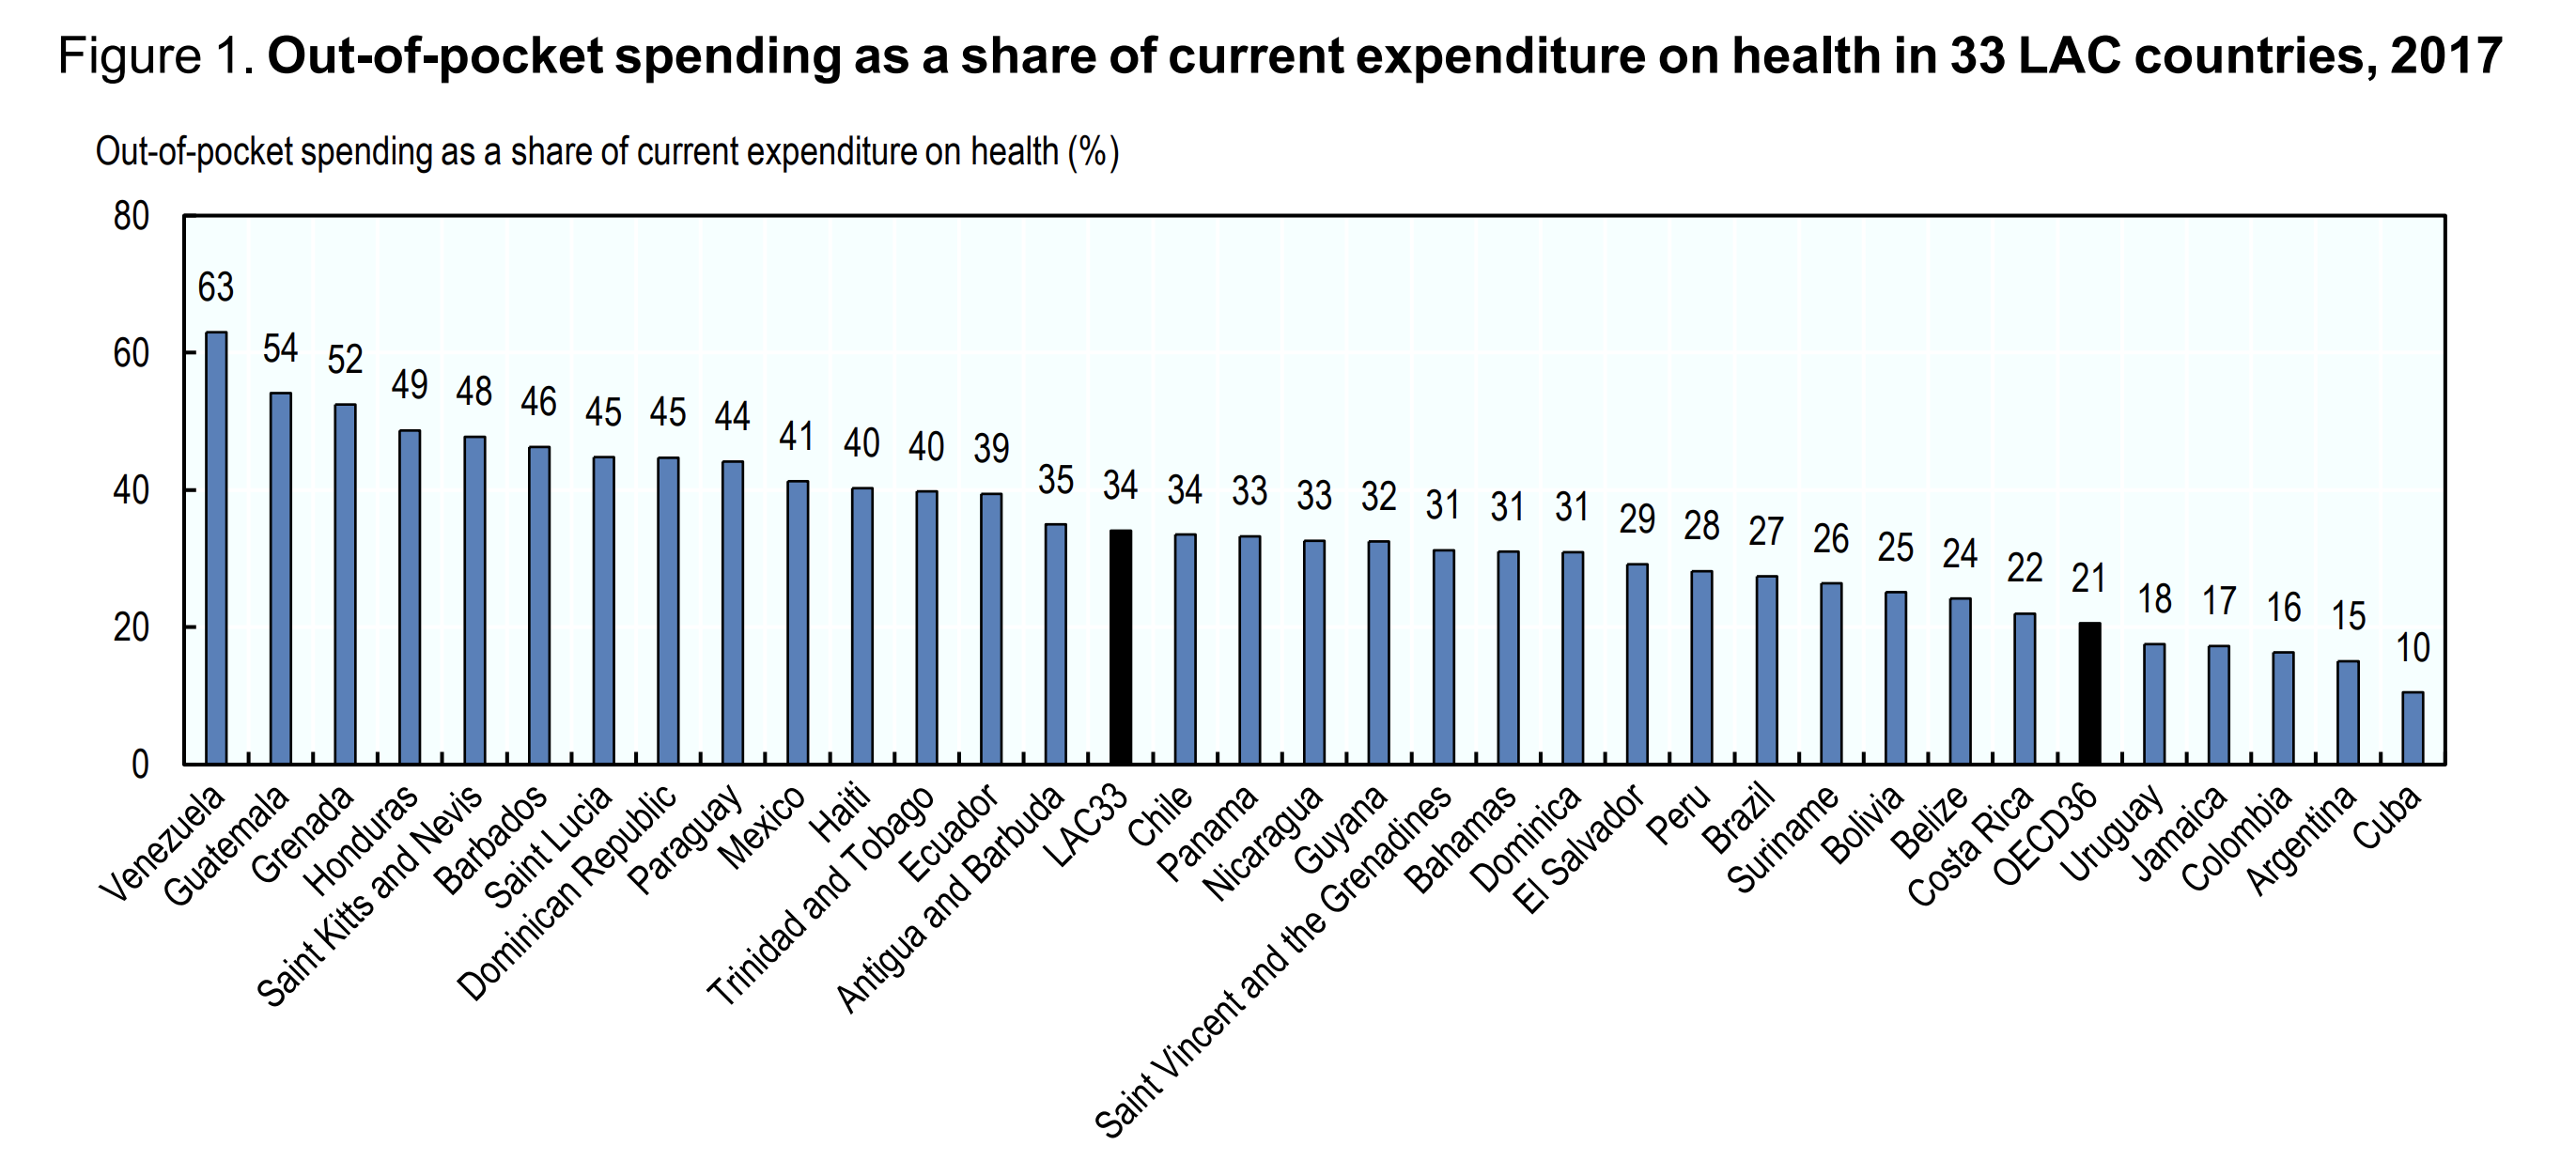 Out-of-pocket healthcare costs are high across much of Latin America